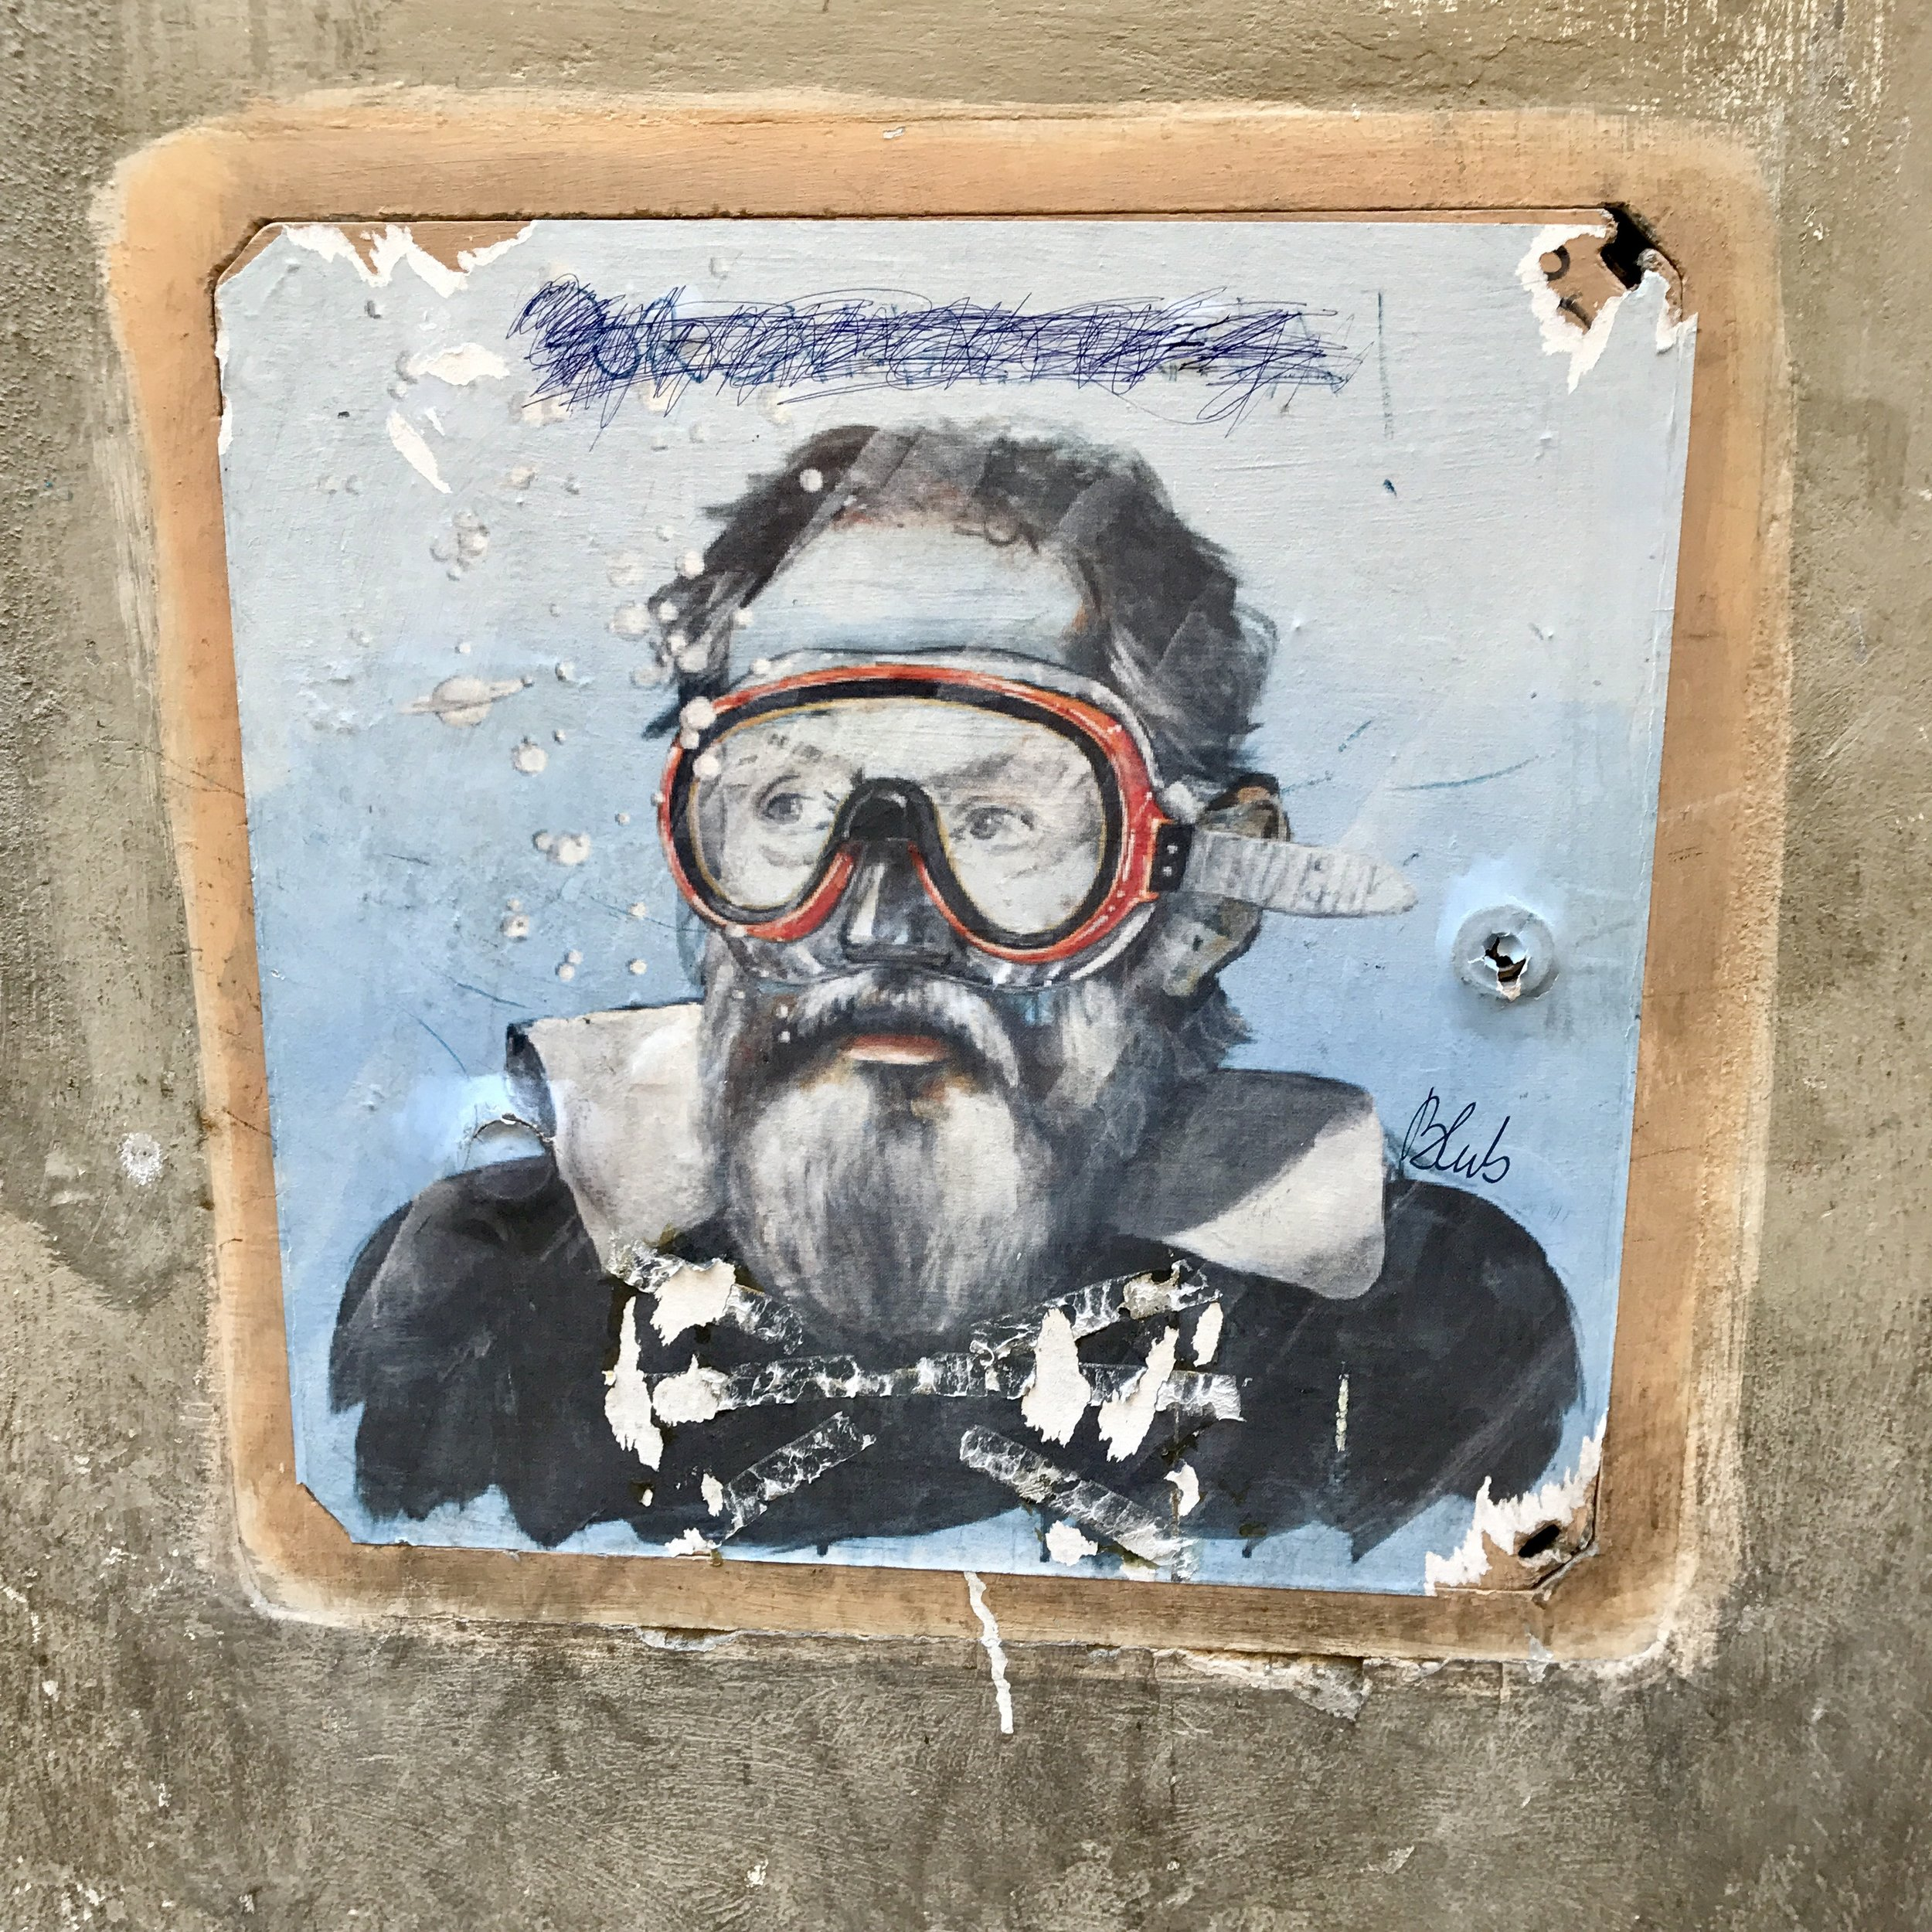 "The Florence, Italy-based street artist  Blub  remixes famous art -- an example is this  portrait of Galileo  ,   As Blub said in a 2017 interview,  ""Renaissance art in Florence is still strong and hides today's art that is alive and contemporary, so by using icons of the past with diving masks the theme presents a mix between the past and the contemporary world. There is no need to deny the past in order to look at the present, but at least acknowledge it.""  With the simple act of blue wash, bubbles, and a snorkling mask, Blub remixes old and new and allows us to see both!"